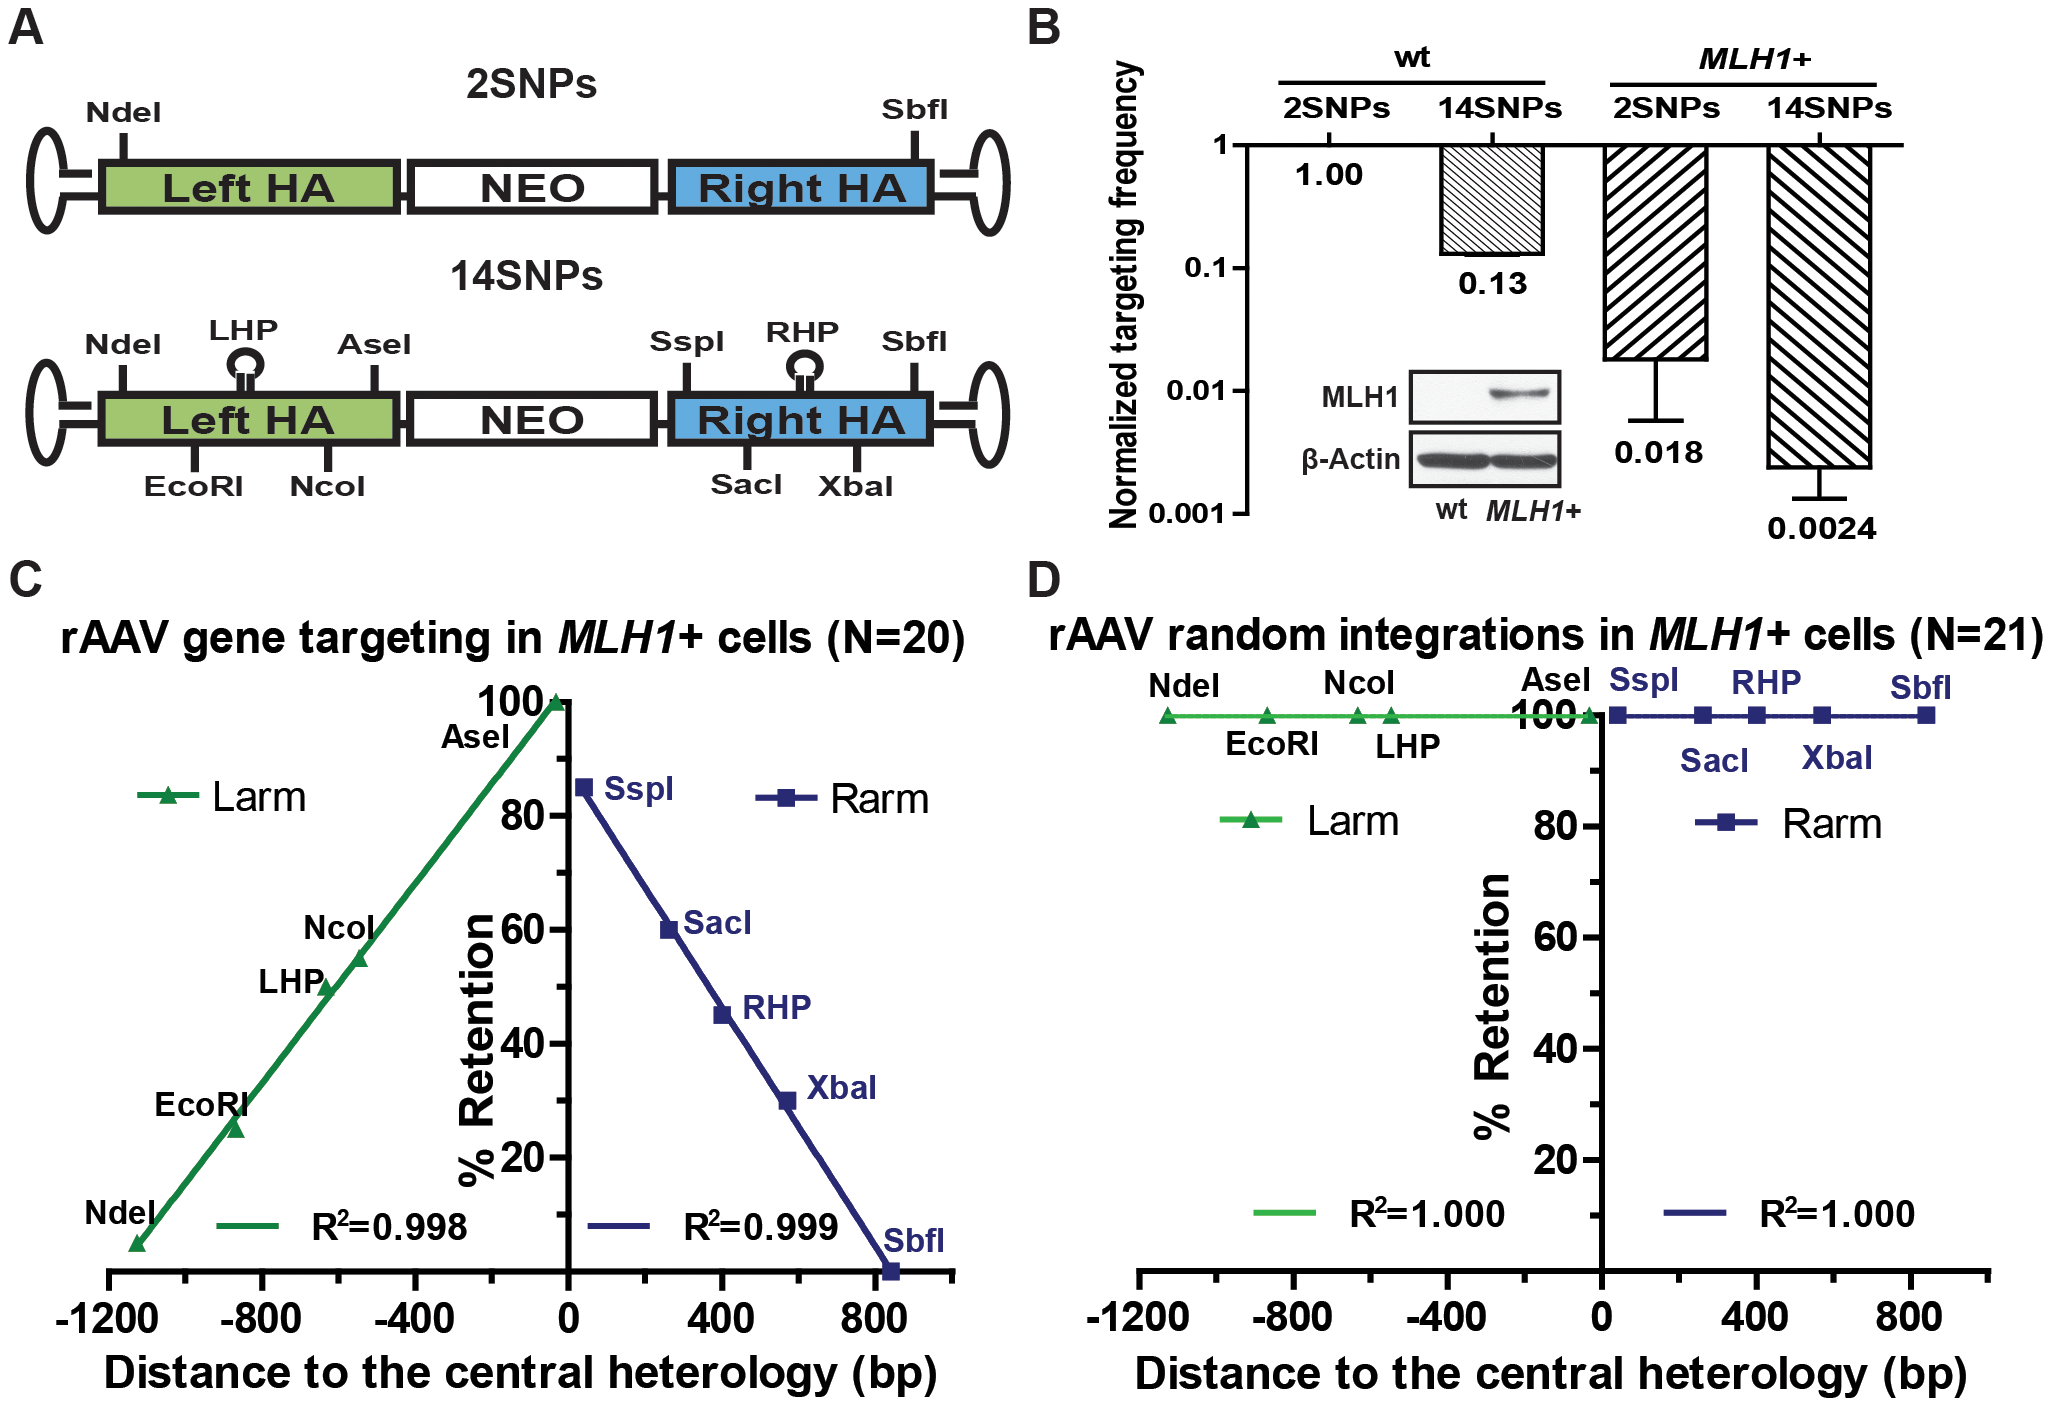 rAAV gene targeting is suppressed in a mismatch repair-proficient background.